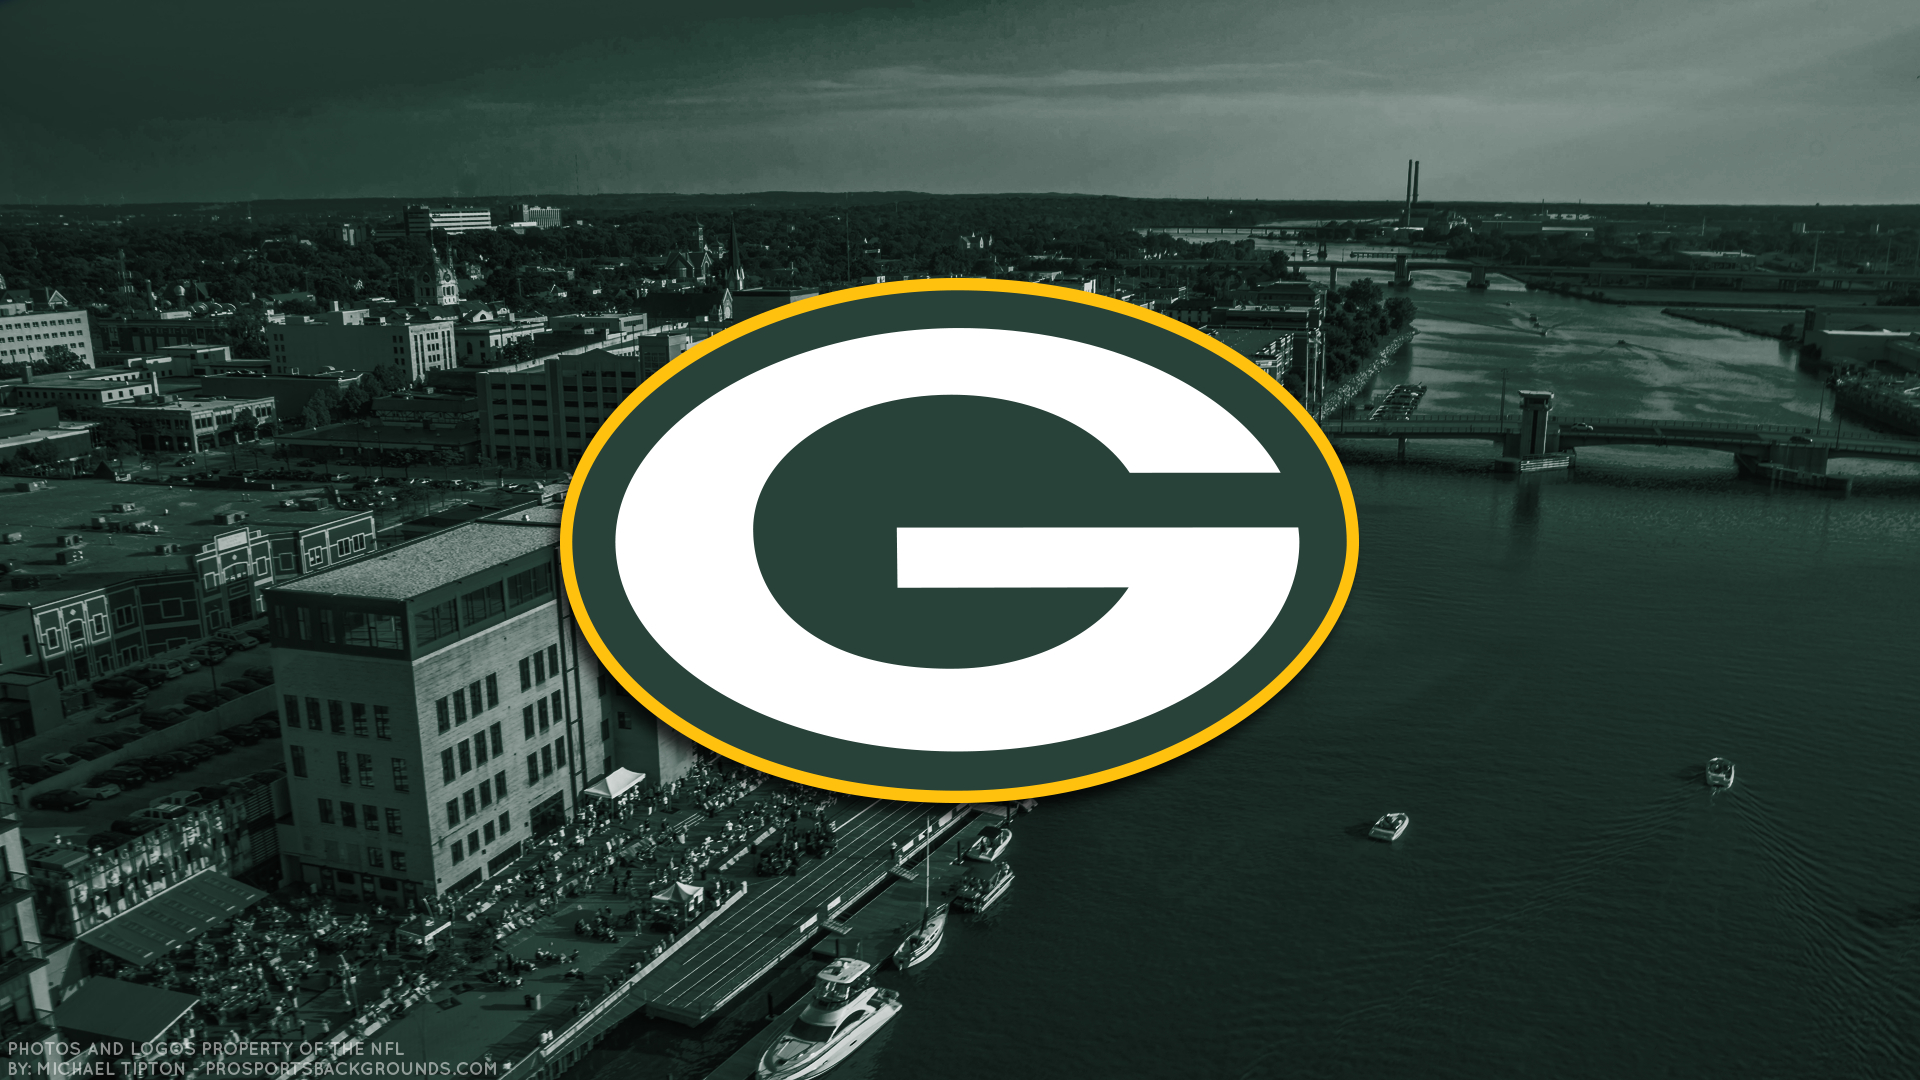 2018 Green Bay Packers Wallpapers - Pc  Iphone  Android - Free Printable Green Bay Packers Logo